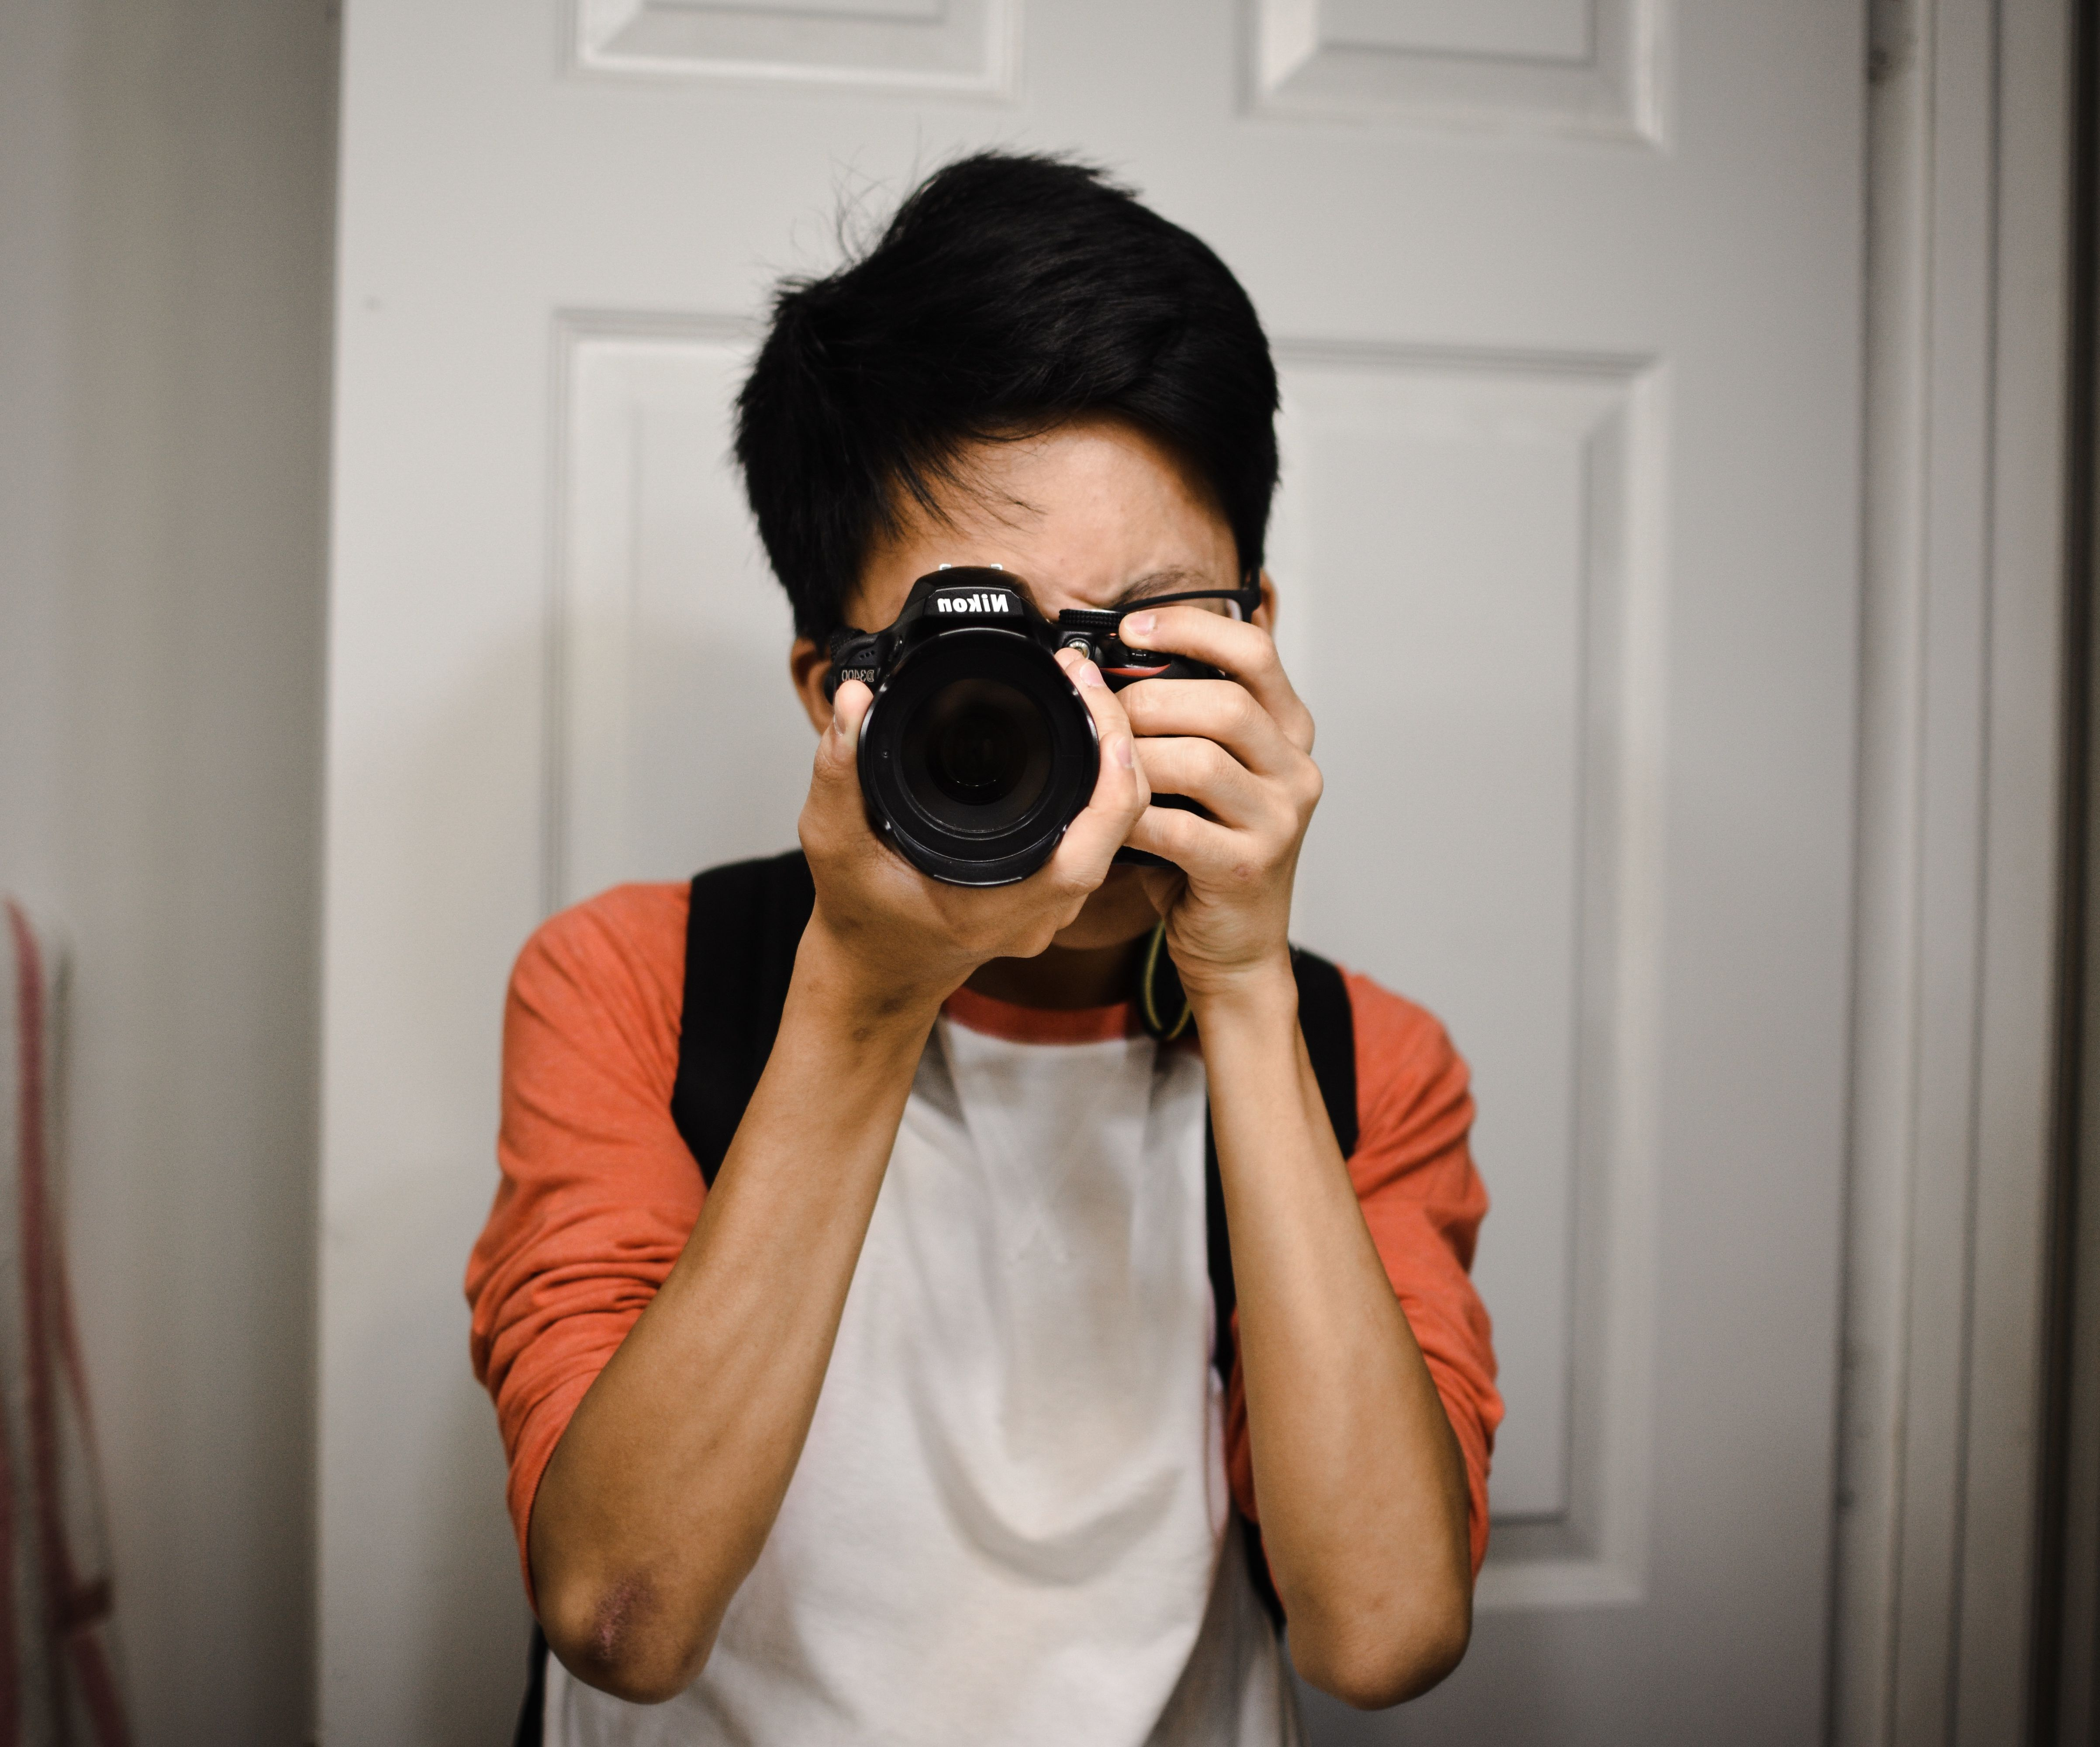 Shooting in Manual Mode- Taking Your Phitography to the Next Level